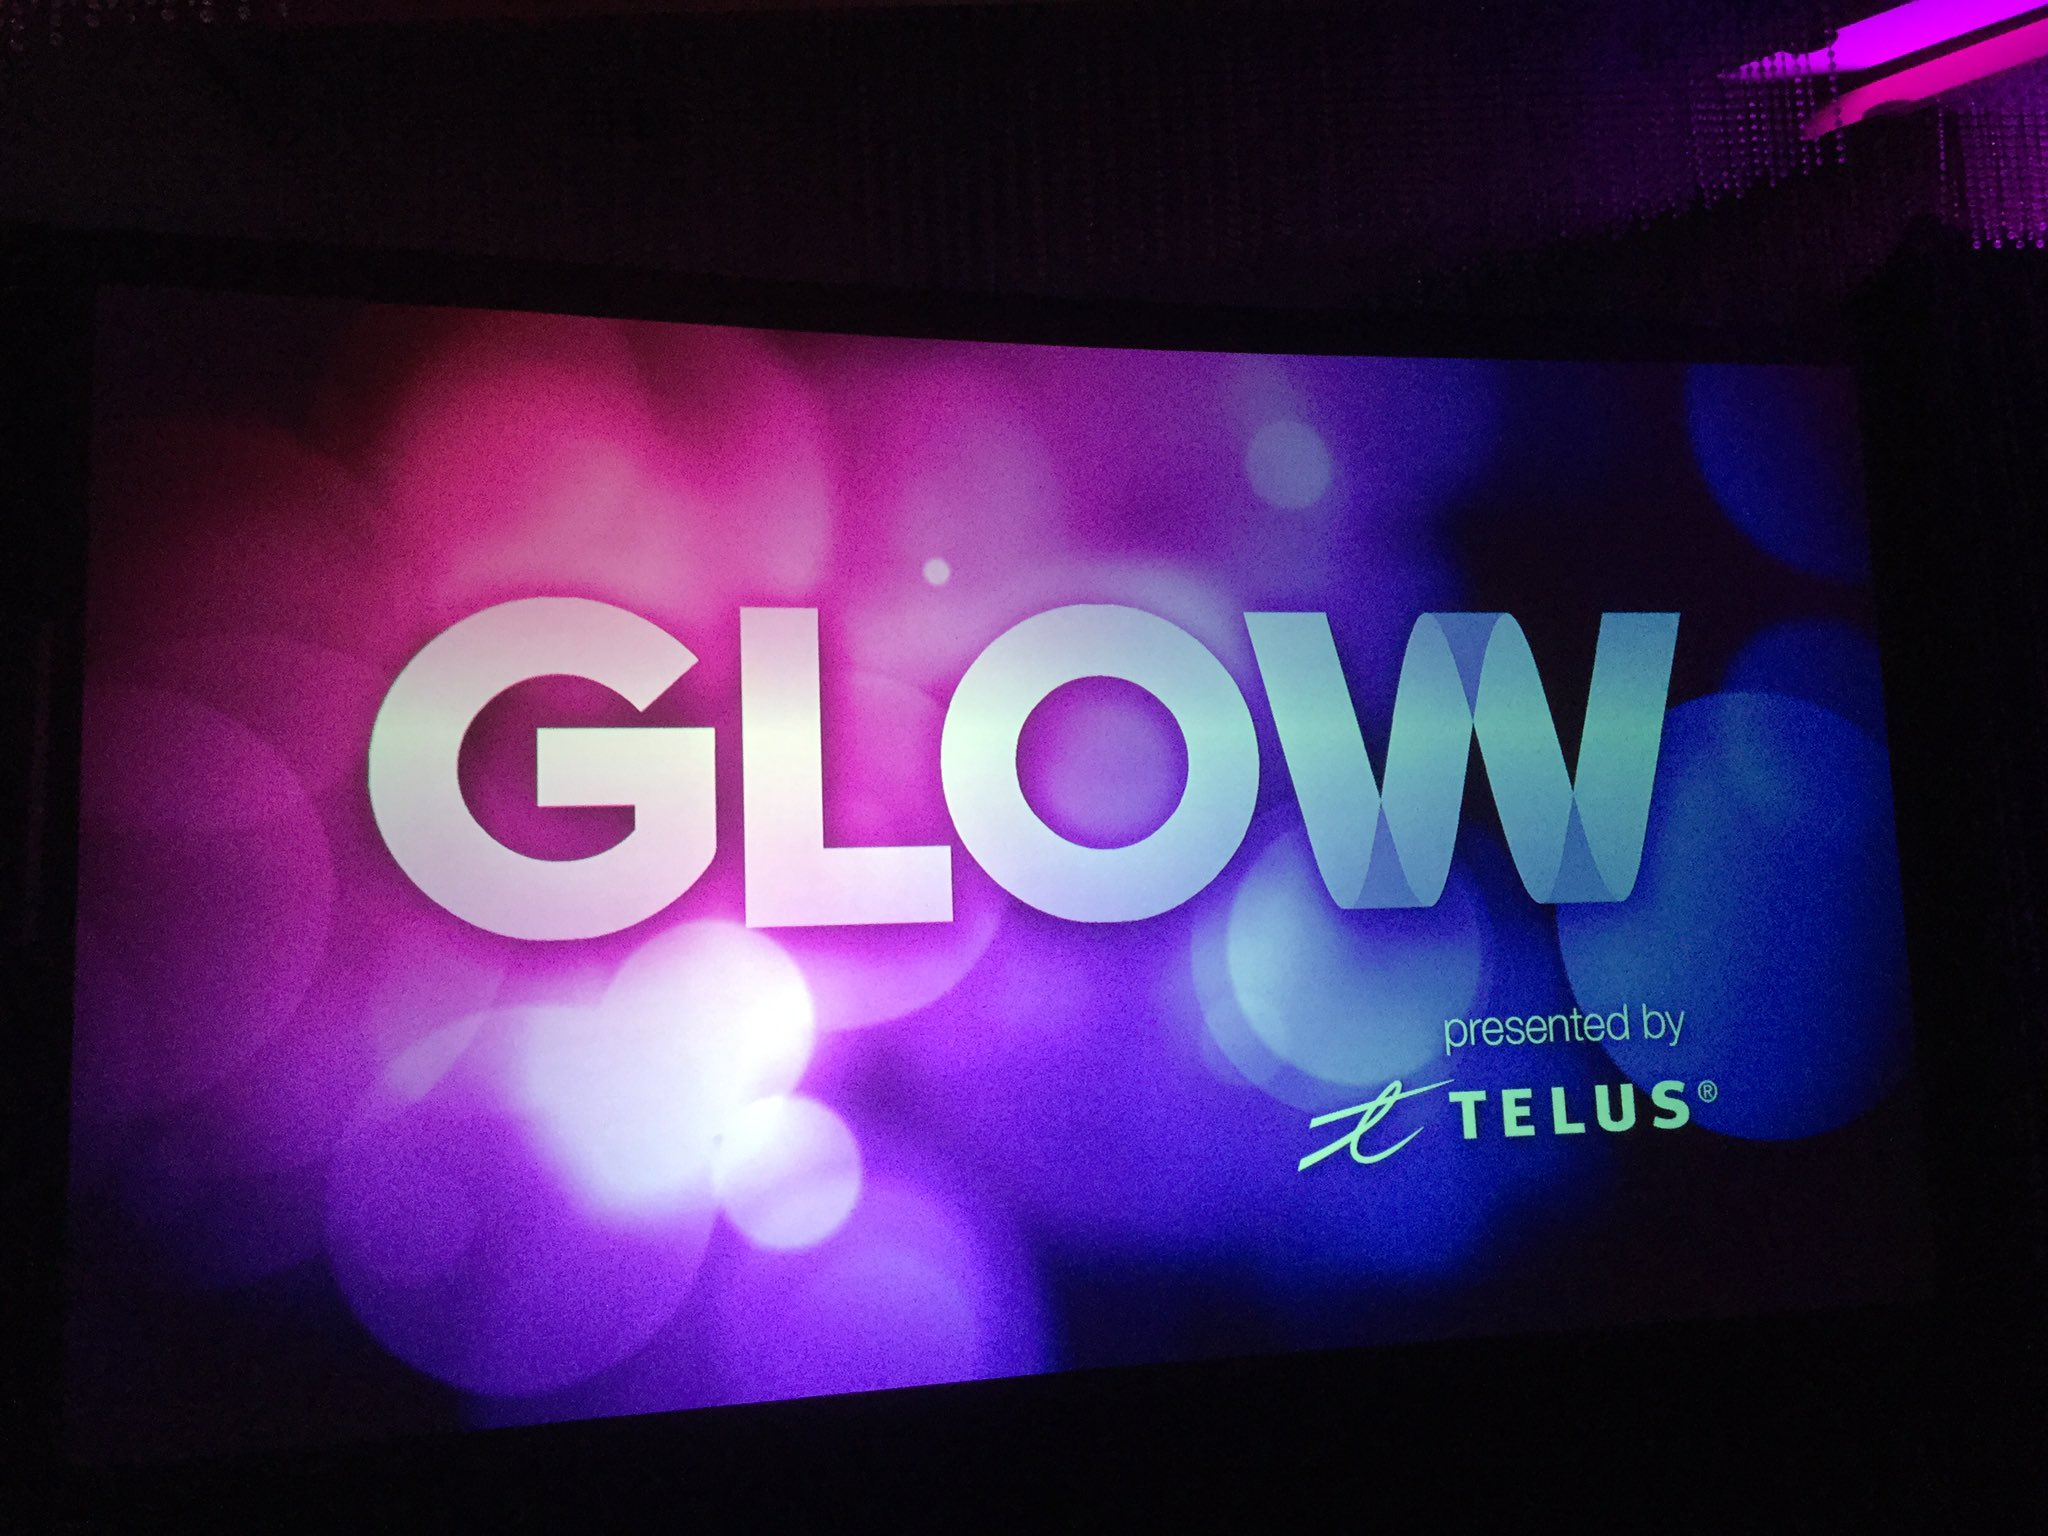 Good evening from Crystal Pavilion Ballroom! We are honoured to host @BCWomensFdn 2017 #GLOWGala. https://t.co/ULbz0Out3h